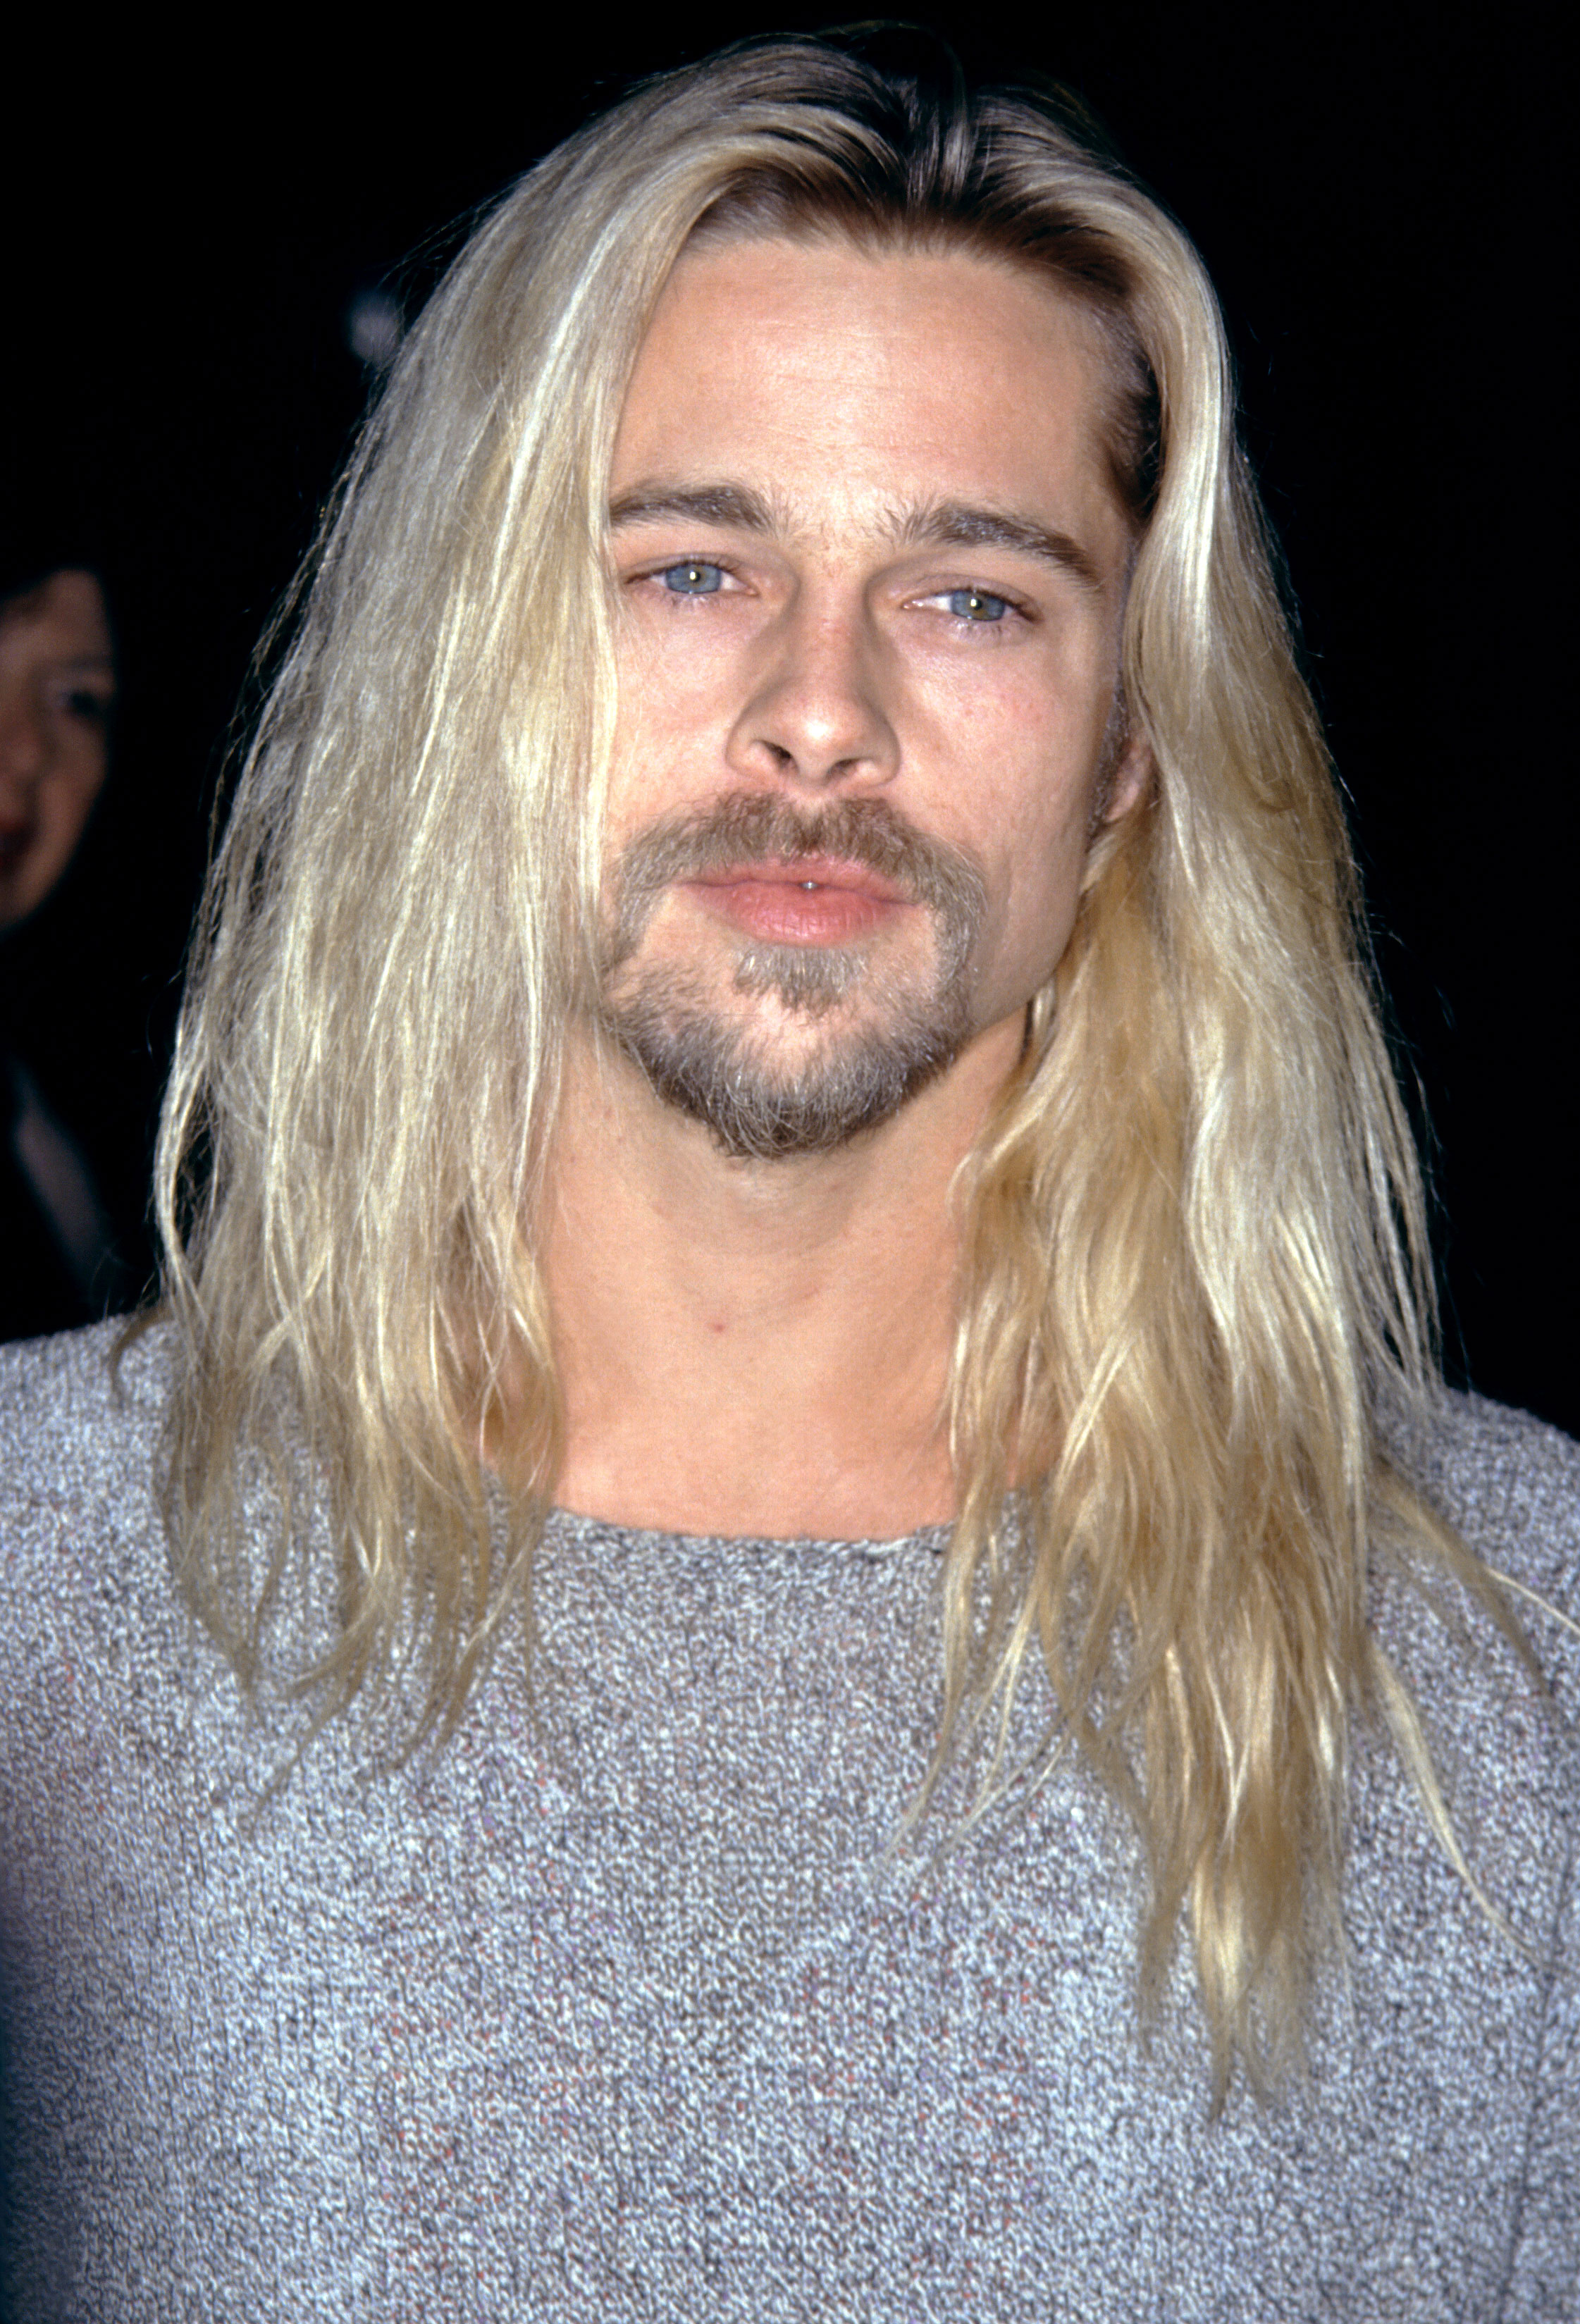 brad-pitt-long hair-2 - At the L.A. premiere of Legends of the Fall , the heartthrob showed off a new bleach blonde color and even longer locks.